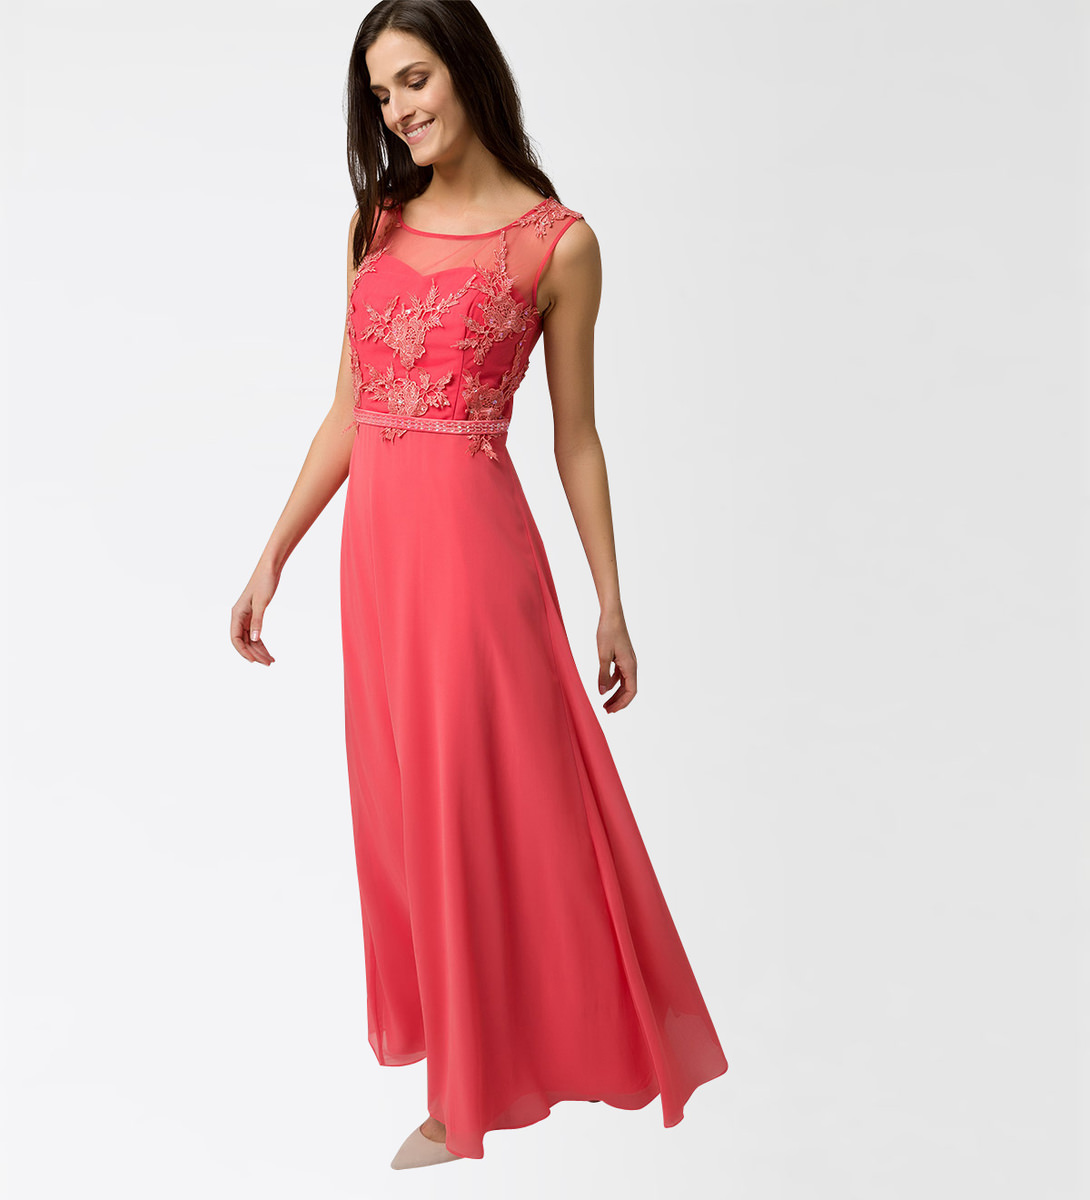 Kleid mit Applikationen in soft melon